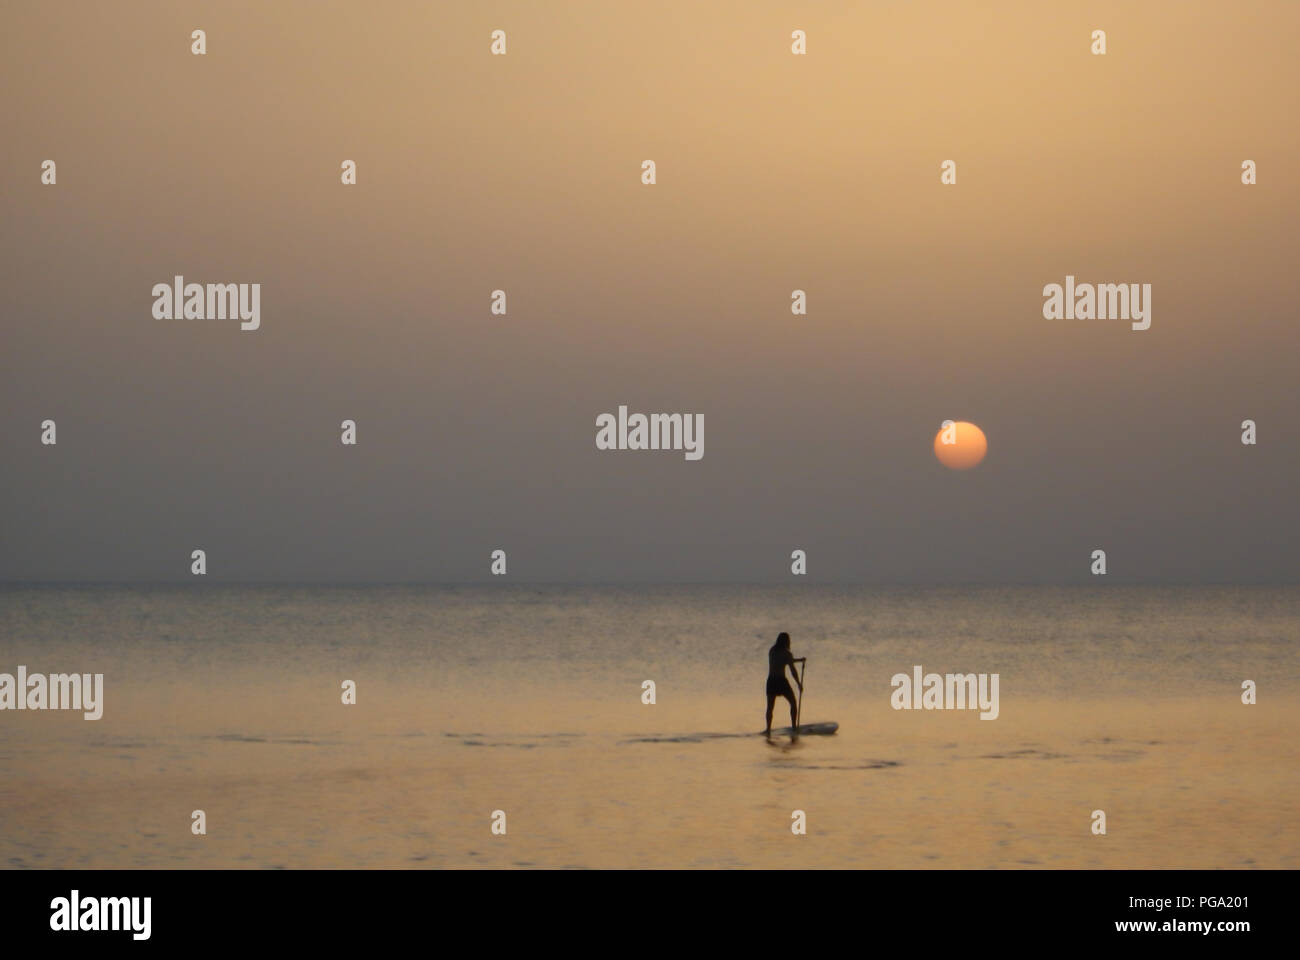 Paddle boarding at sunset in the Caribbean Sea off Seven Mile Beach in the Cayman Islands. - Stock Image